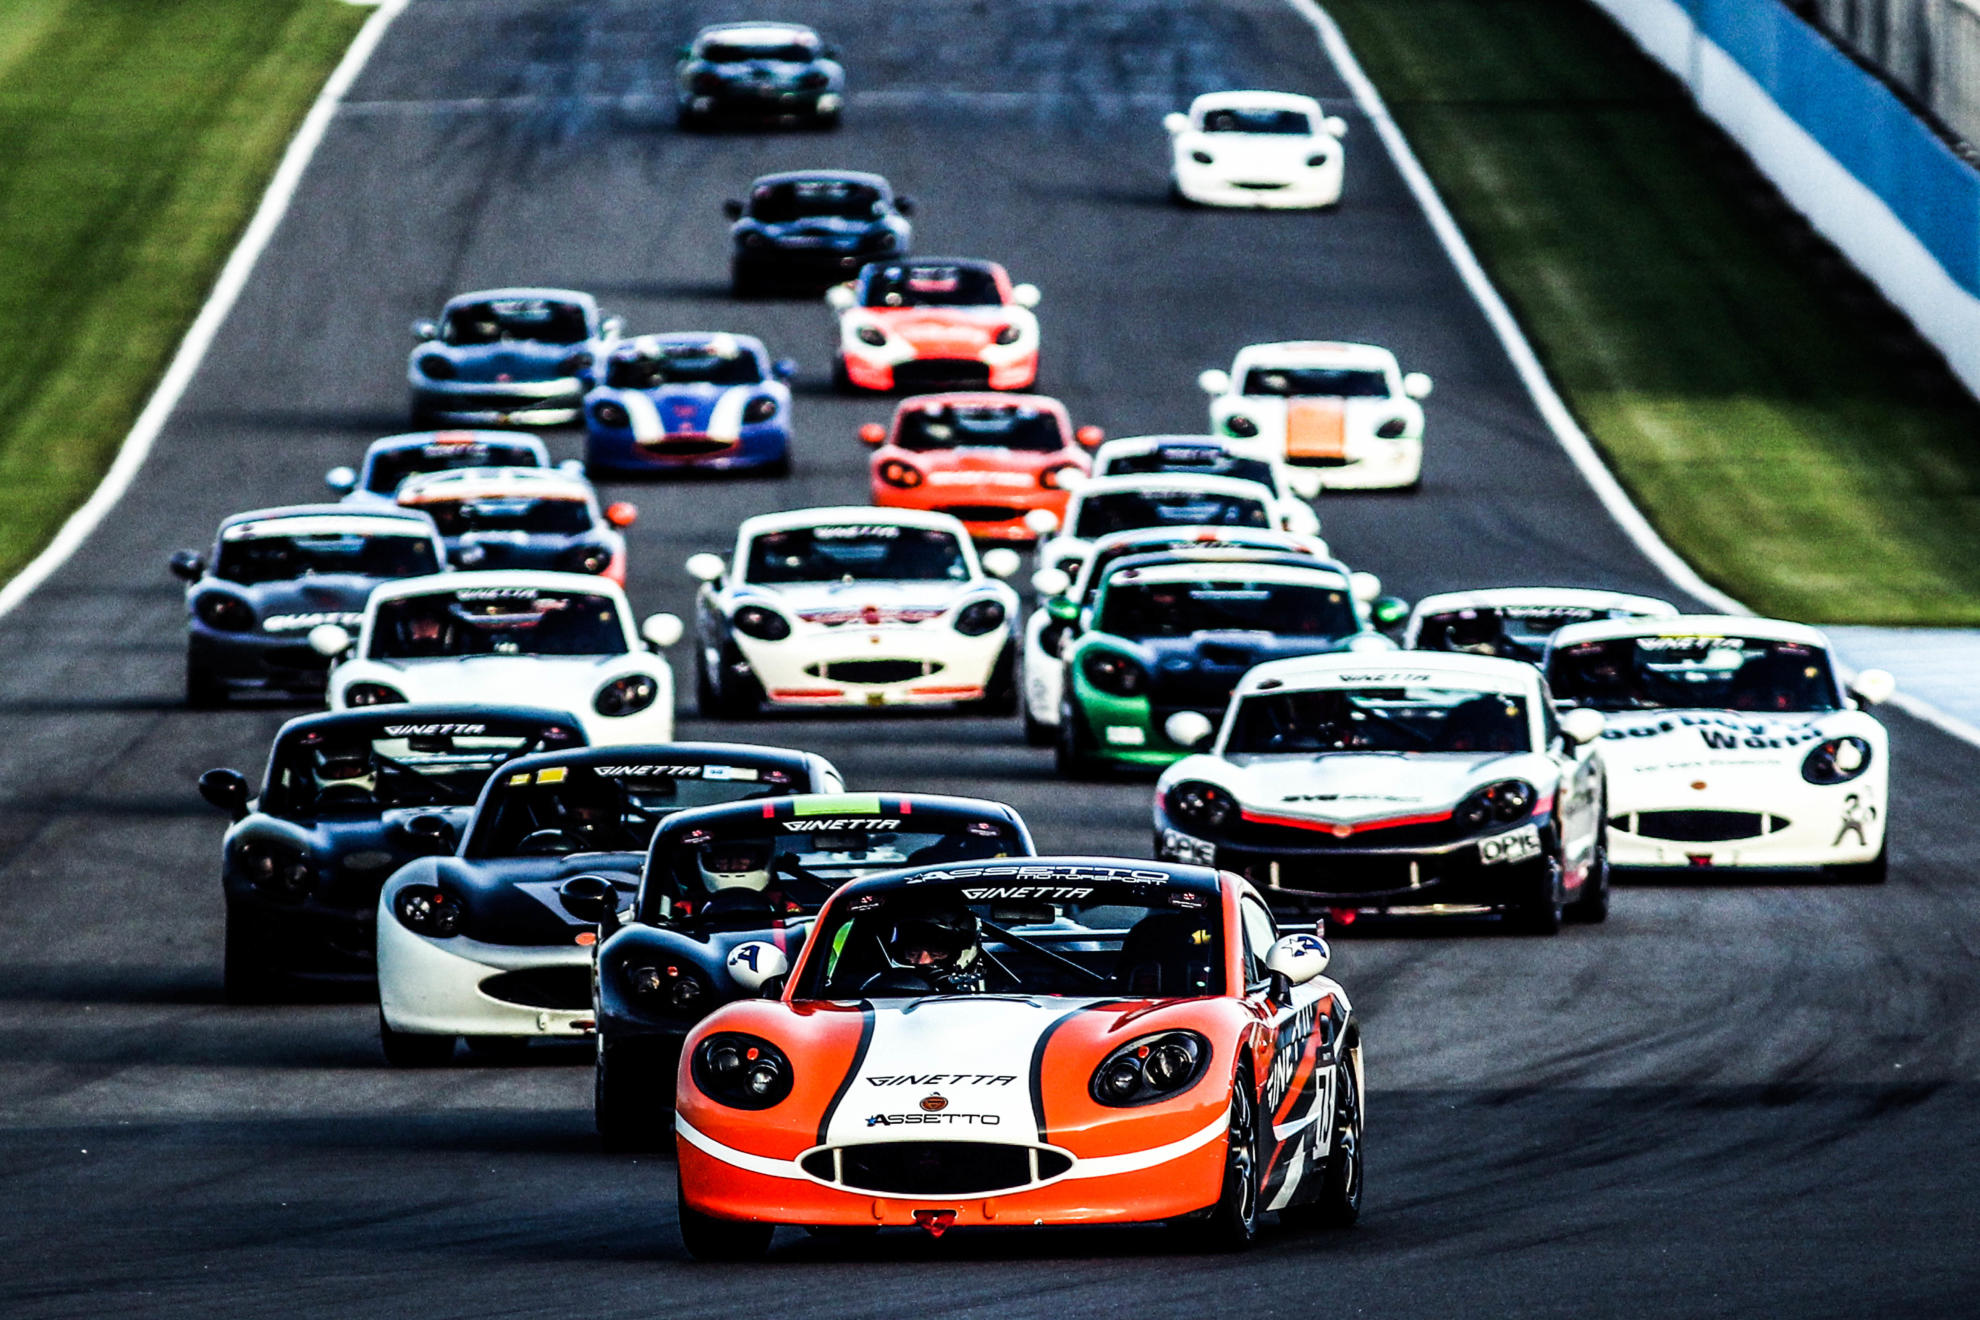 Become A Racing Driver With Our Fixed-Cost Novice Series